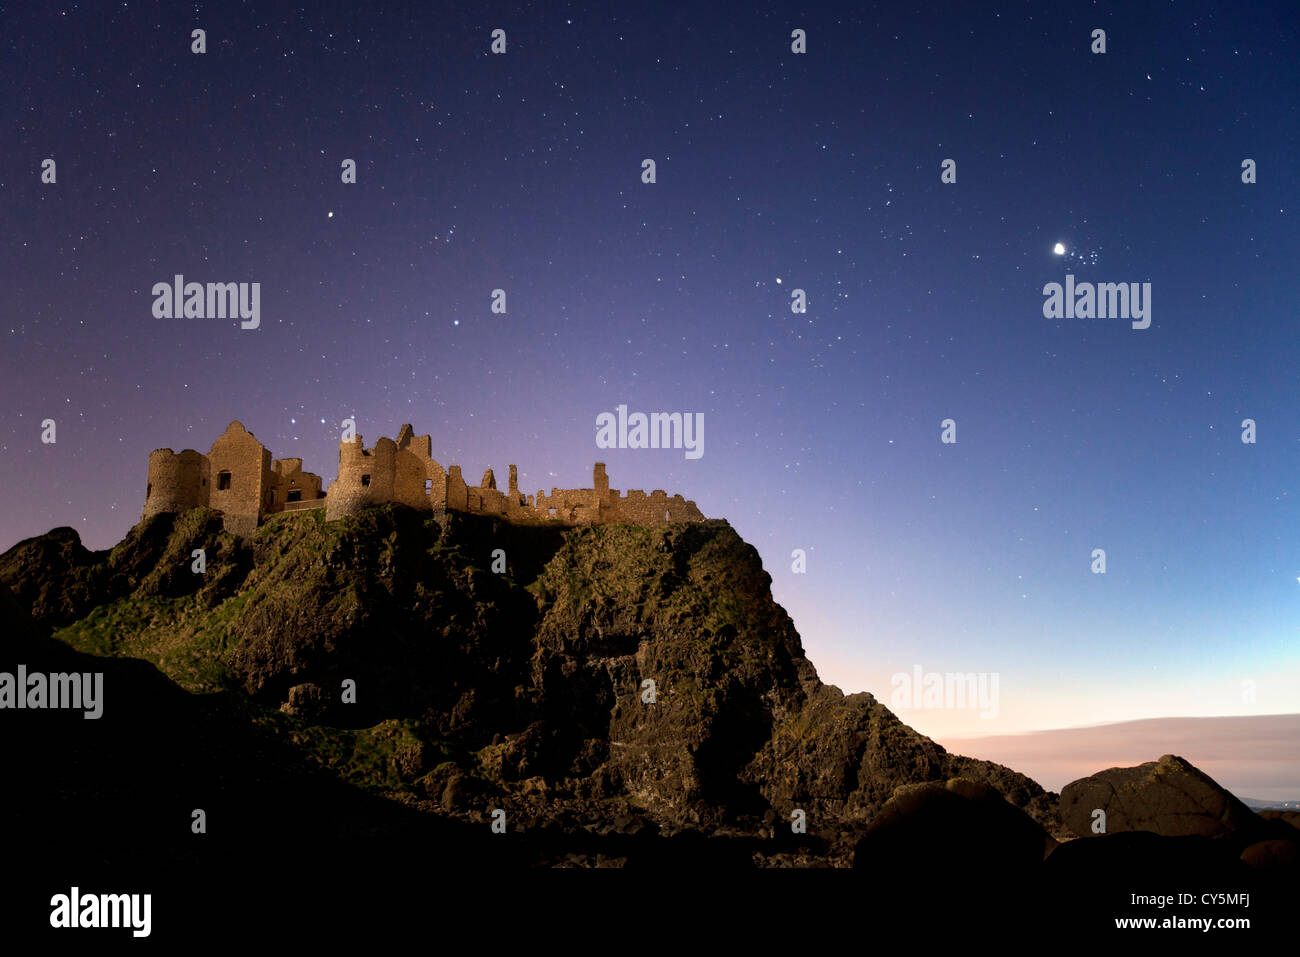 Le Château de Dunluce capturés la nuit par la lune. Photo Stock